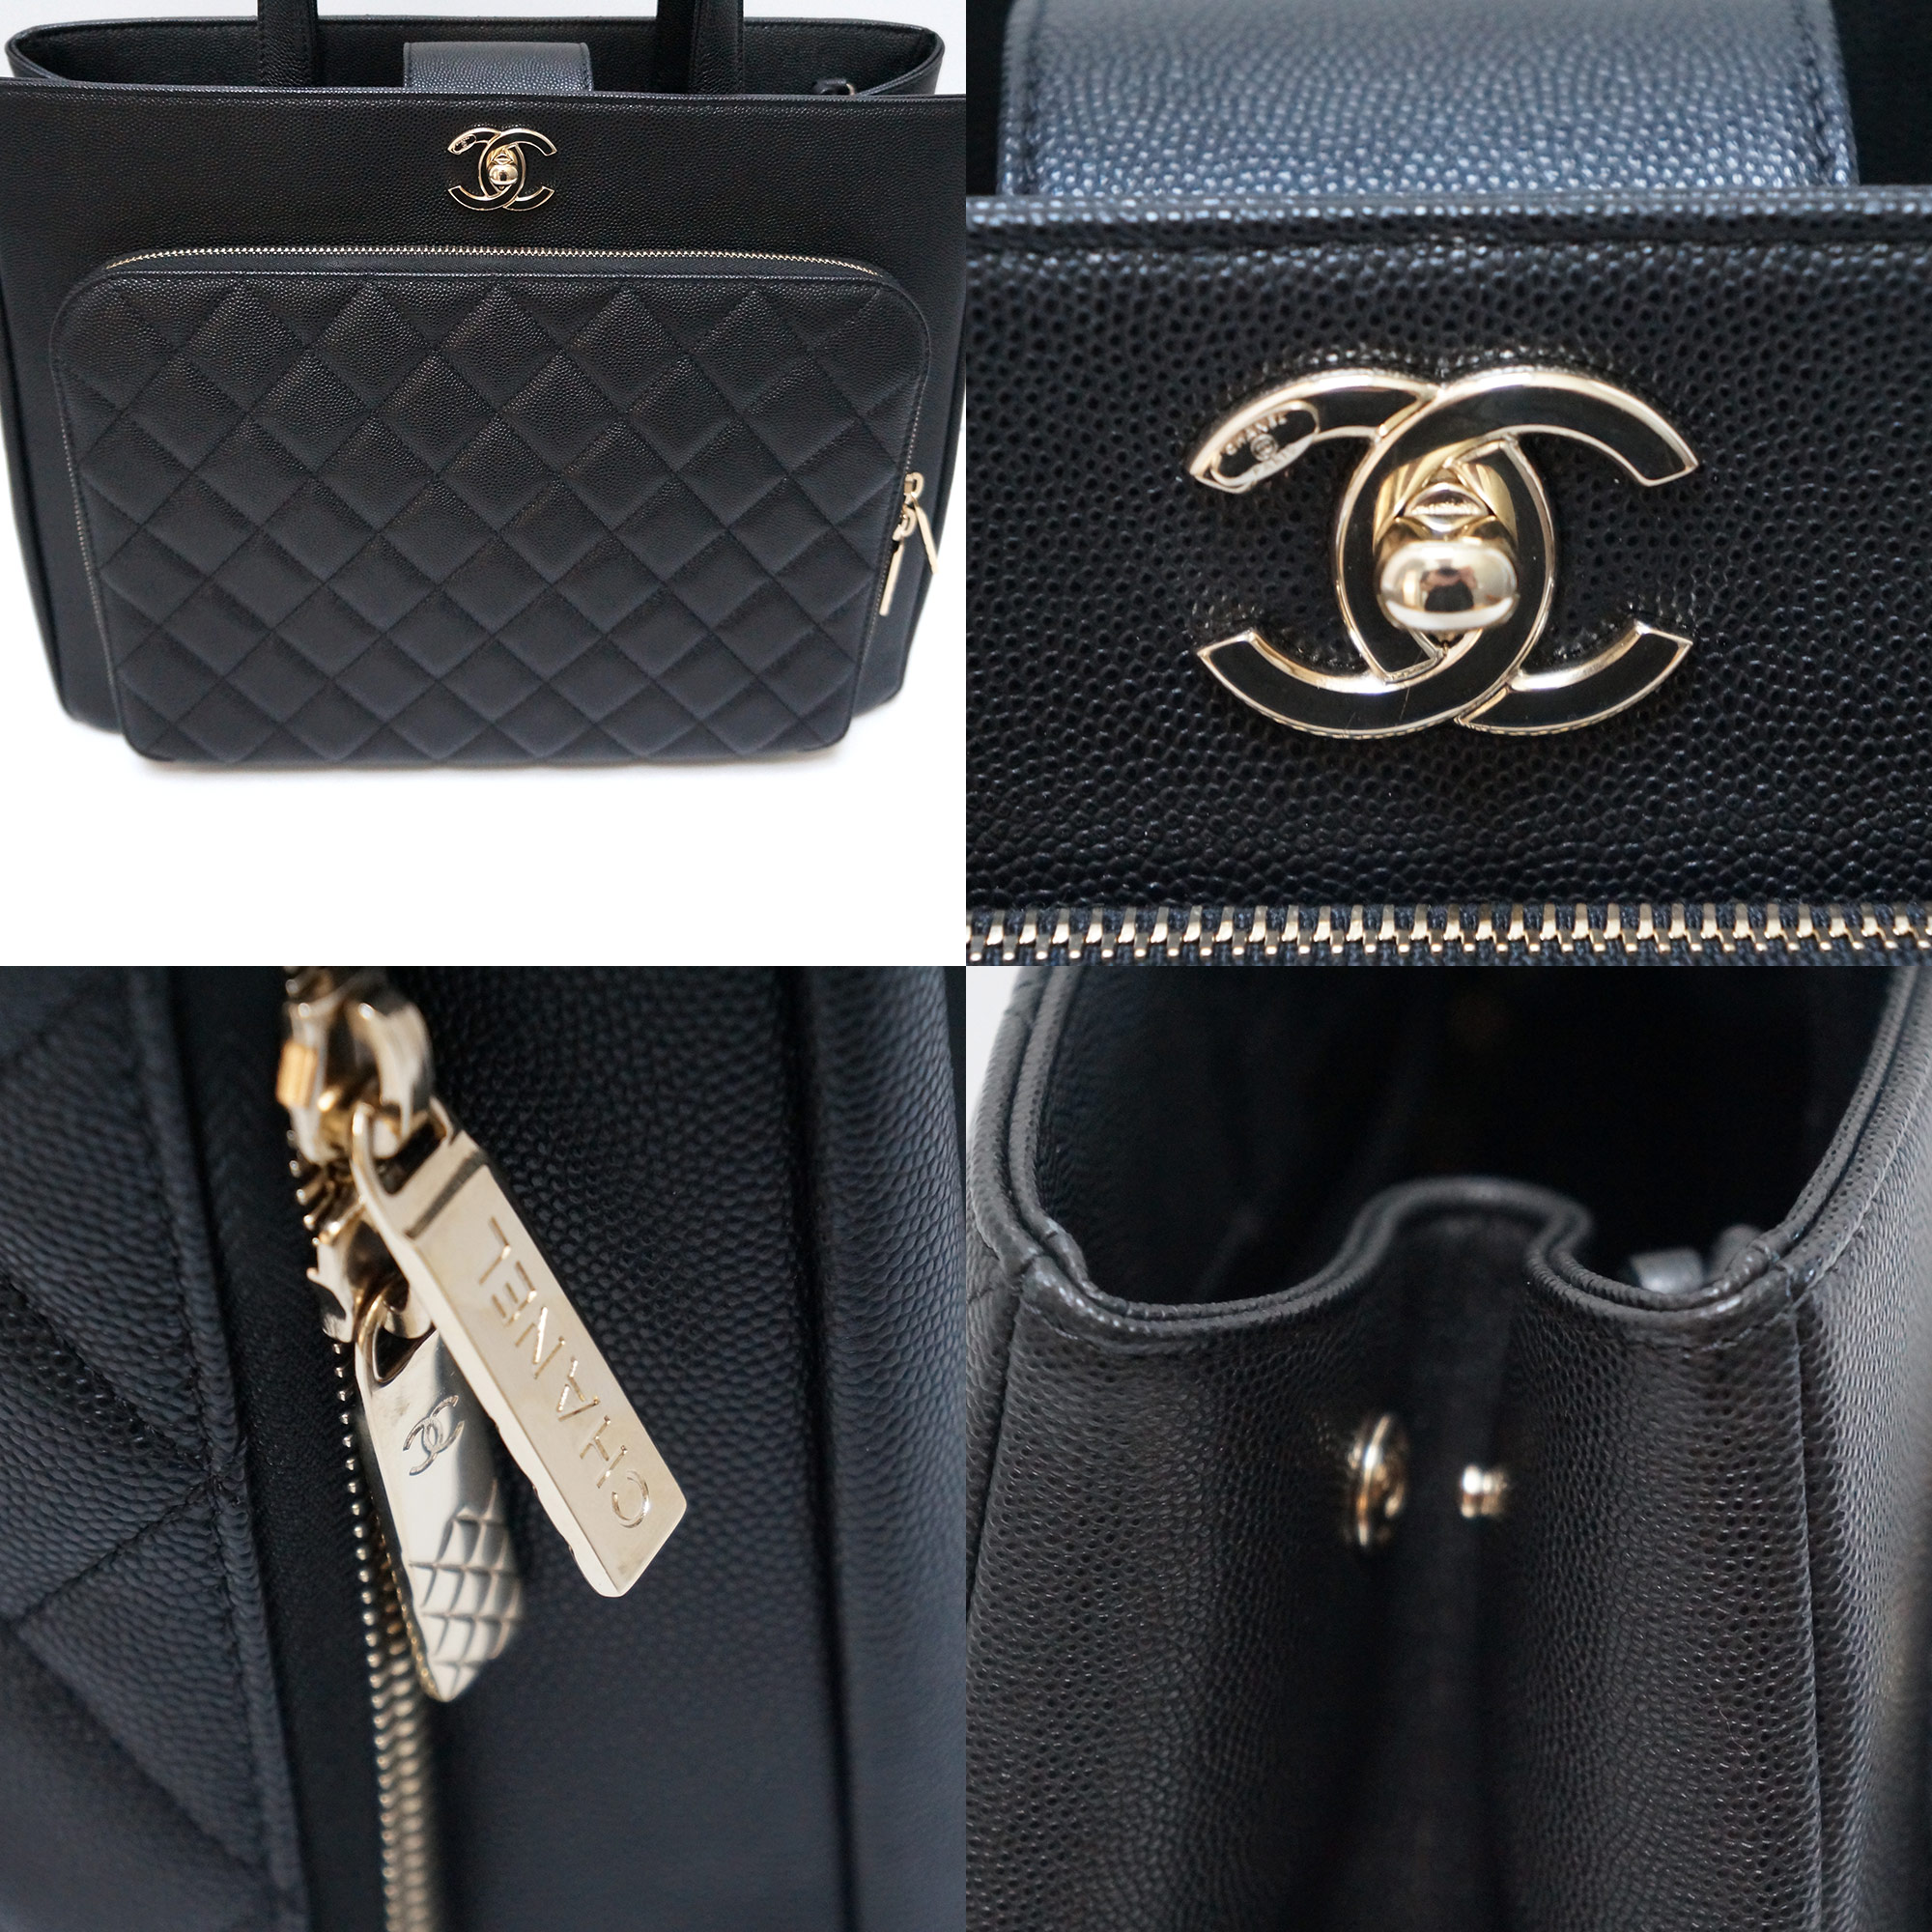 6933a0bcb6cc42 Chanel Lg Business Affinity Shopping Tote Black Caviar Leather Gold Hwr